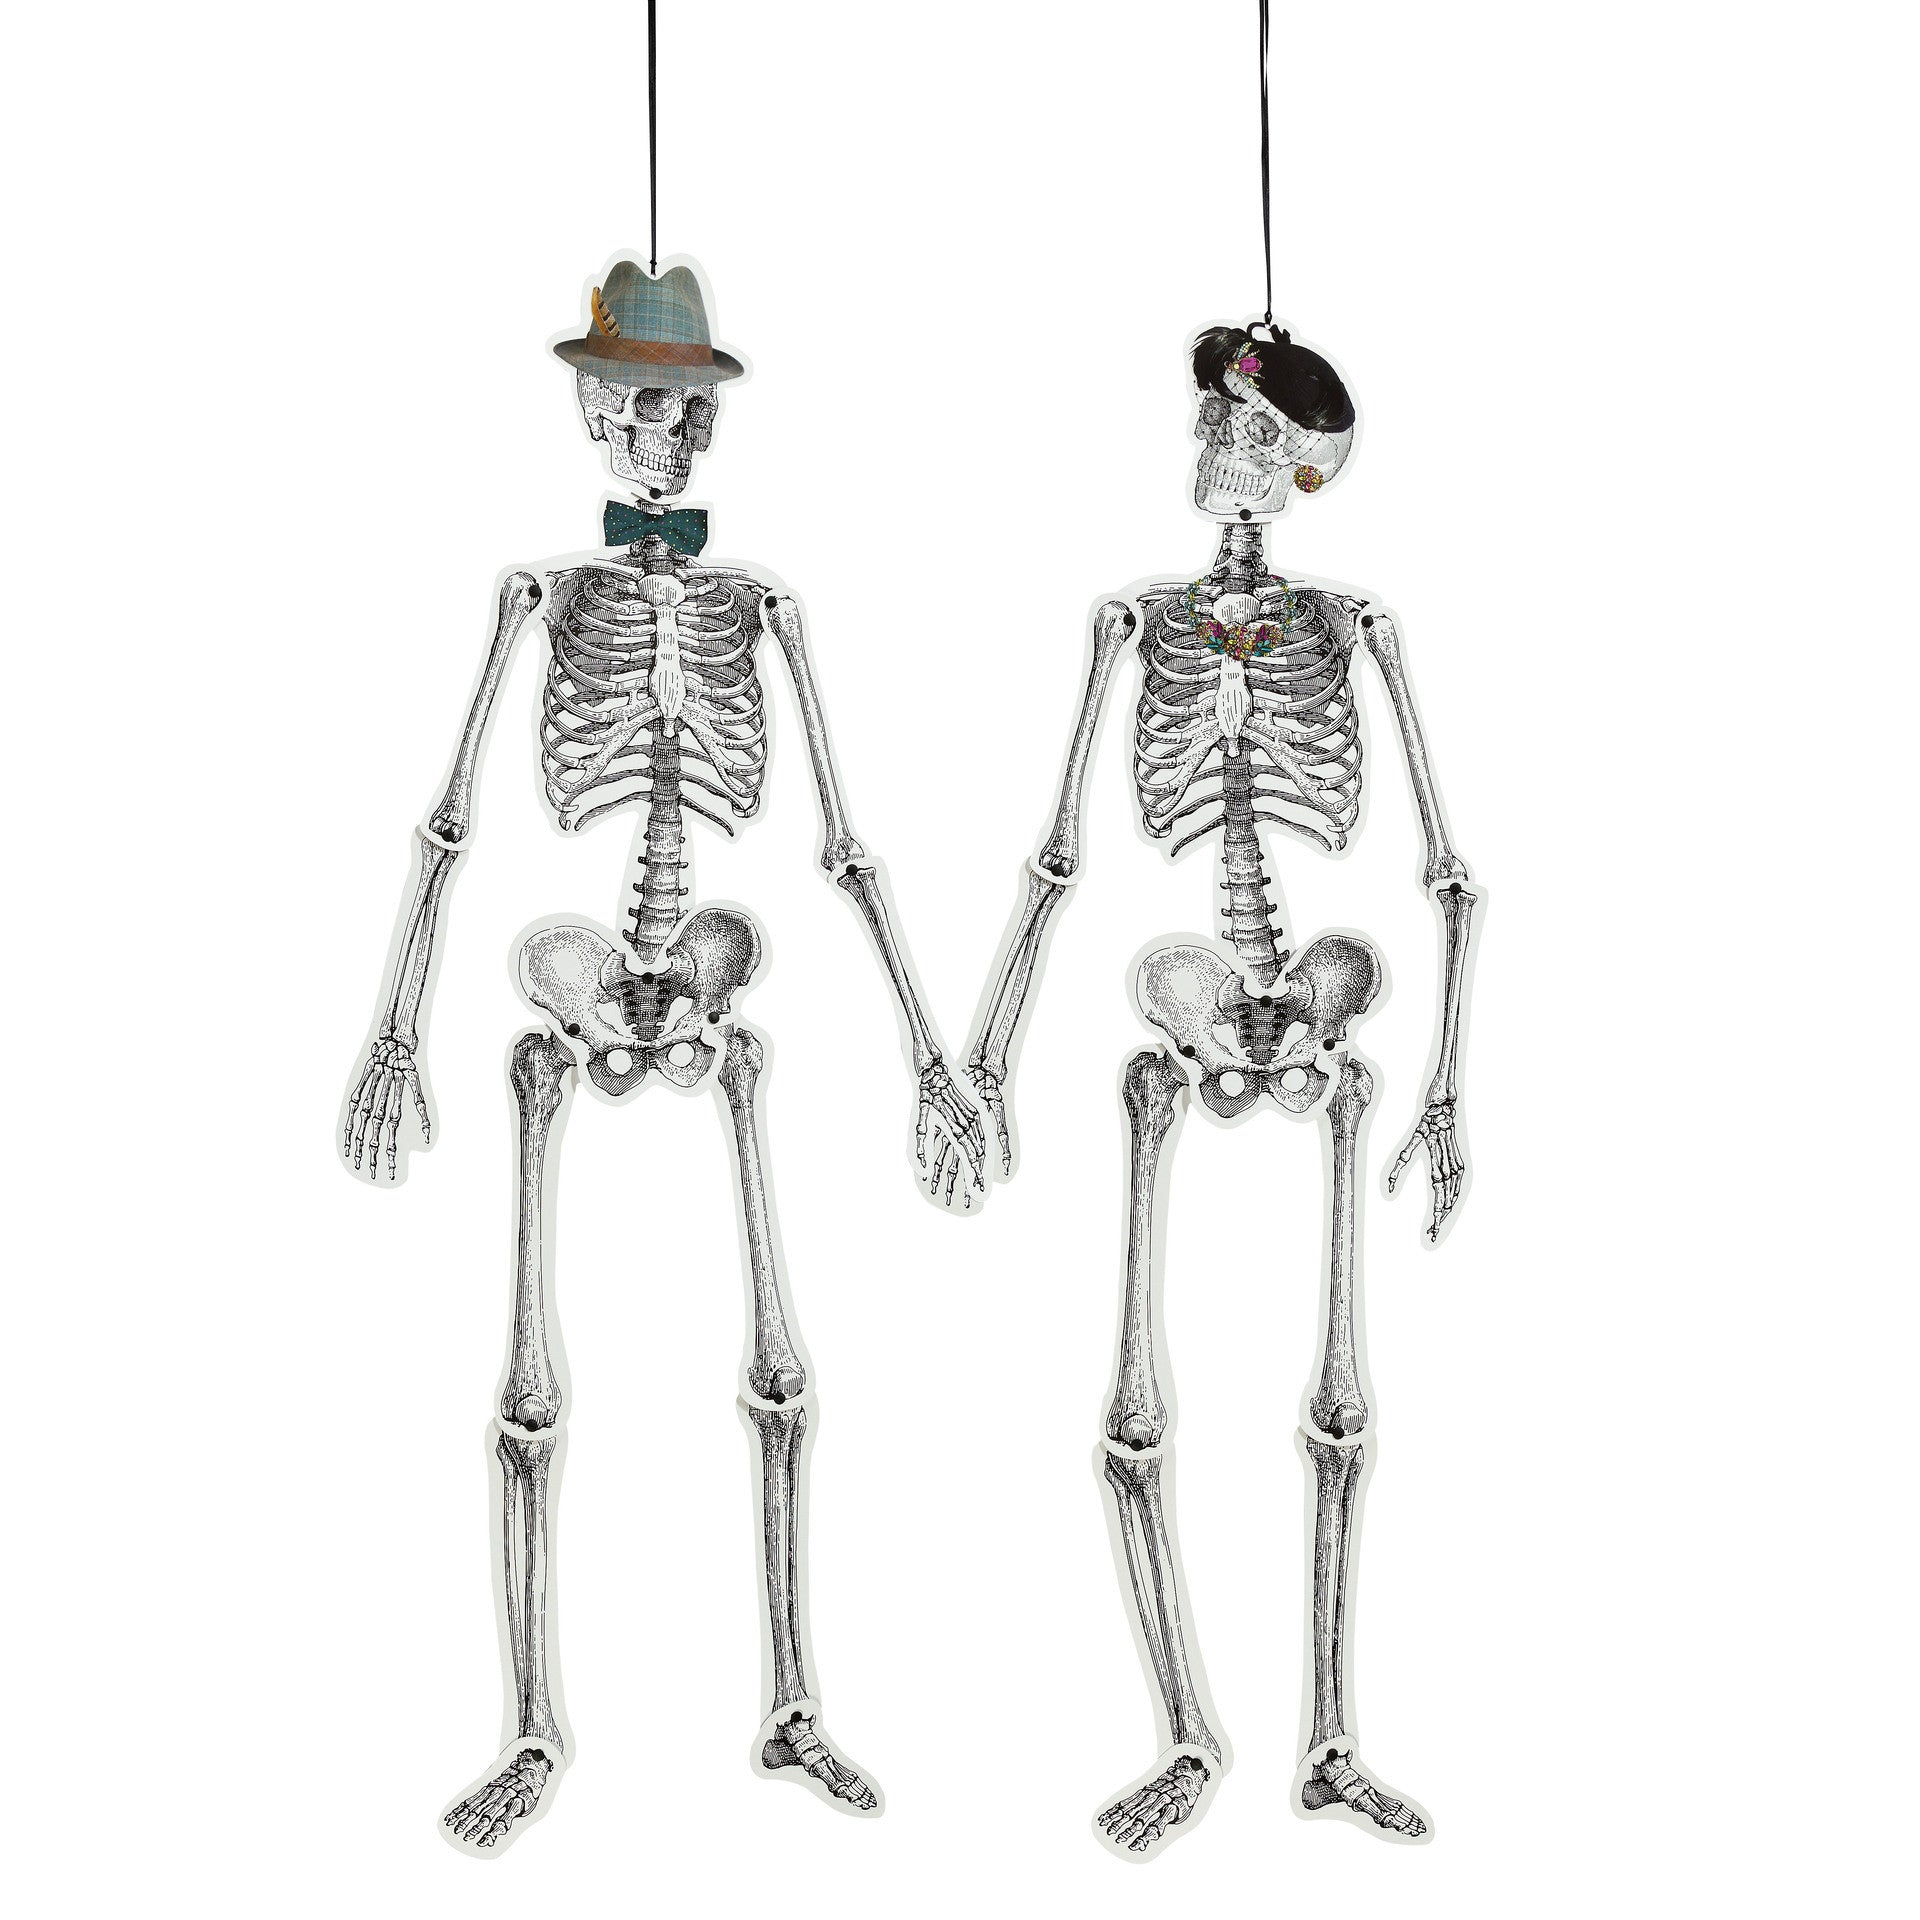 SKELETON CREW MR & MRS BONES HANGING DECORATION from Flingers Party World Bristol Harbourside who offer a huge range of fancy dress costumes and partyware items